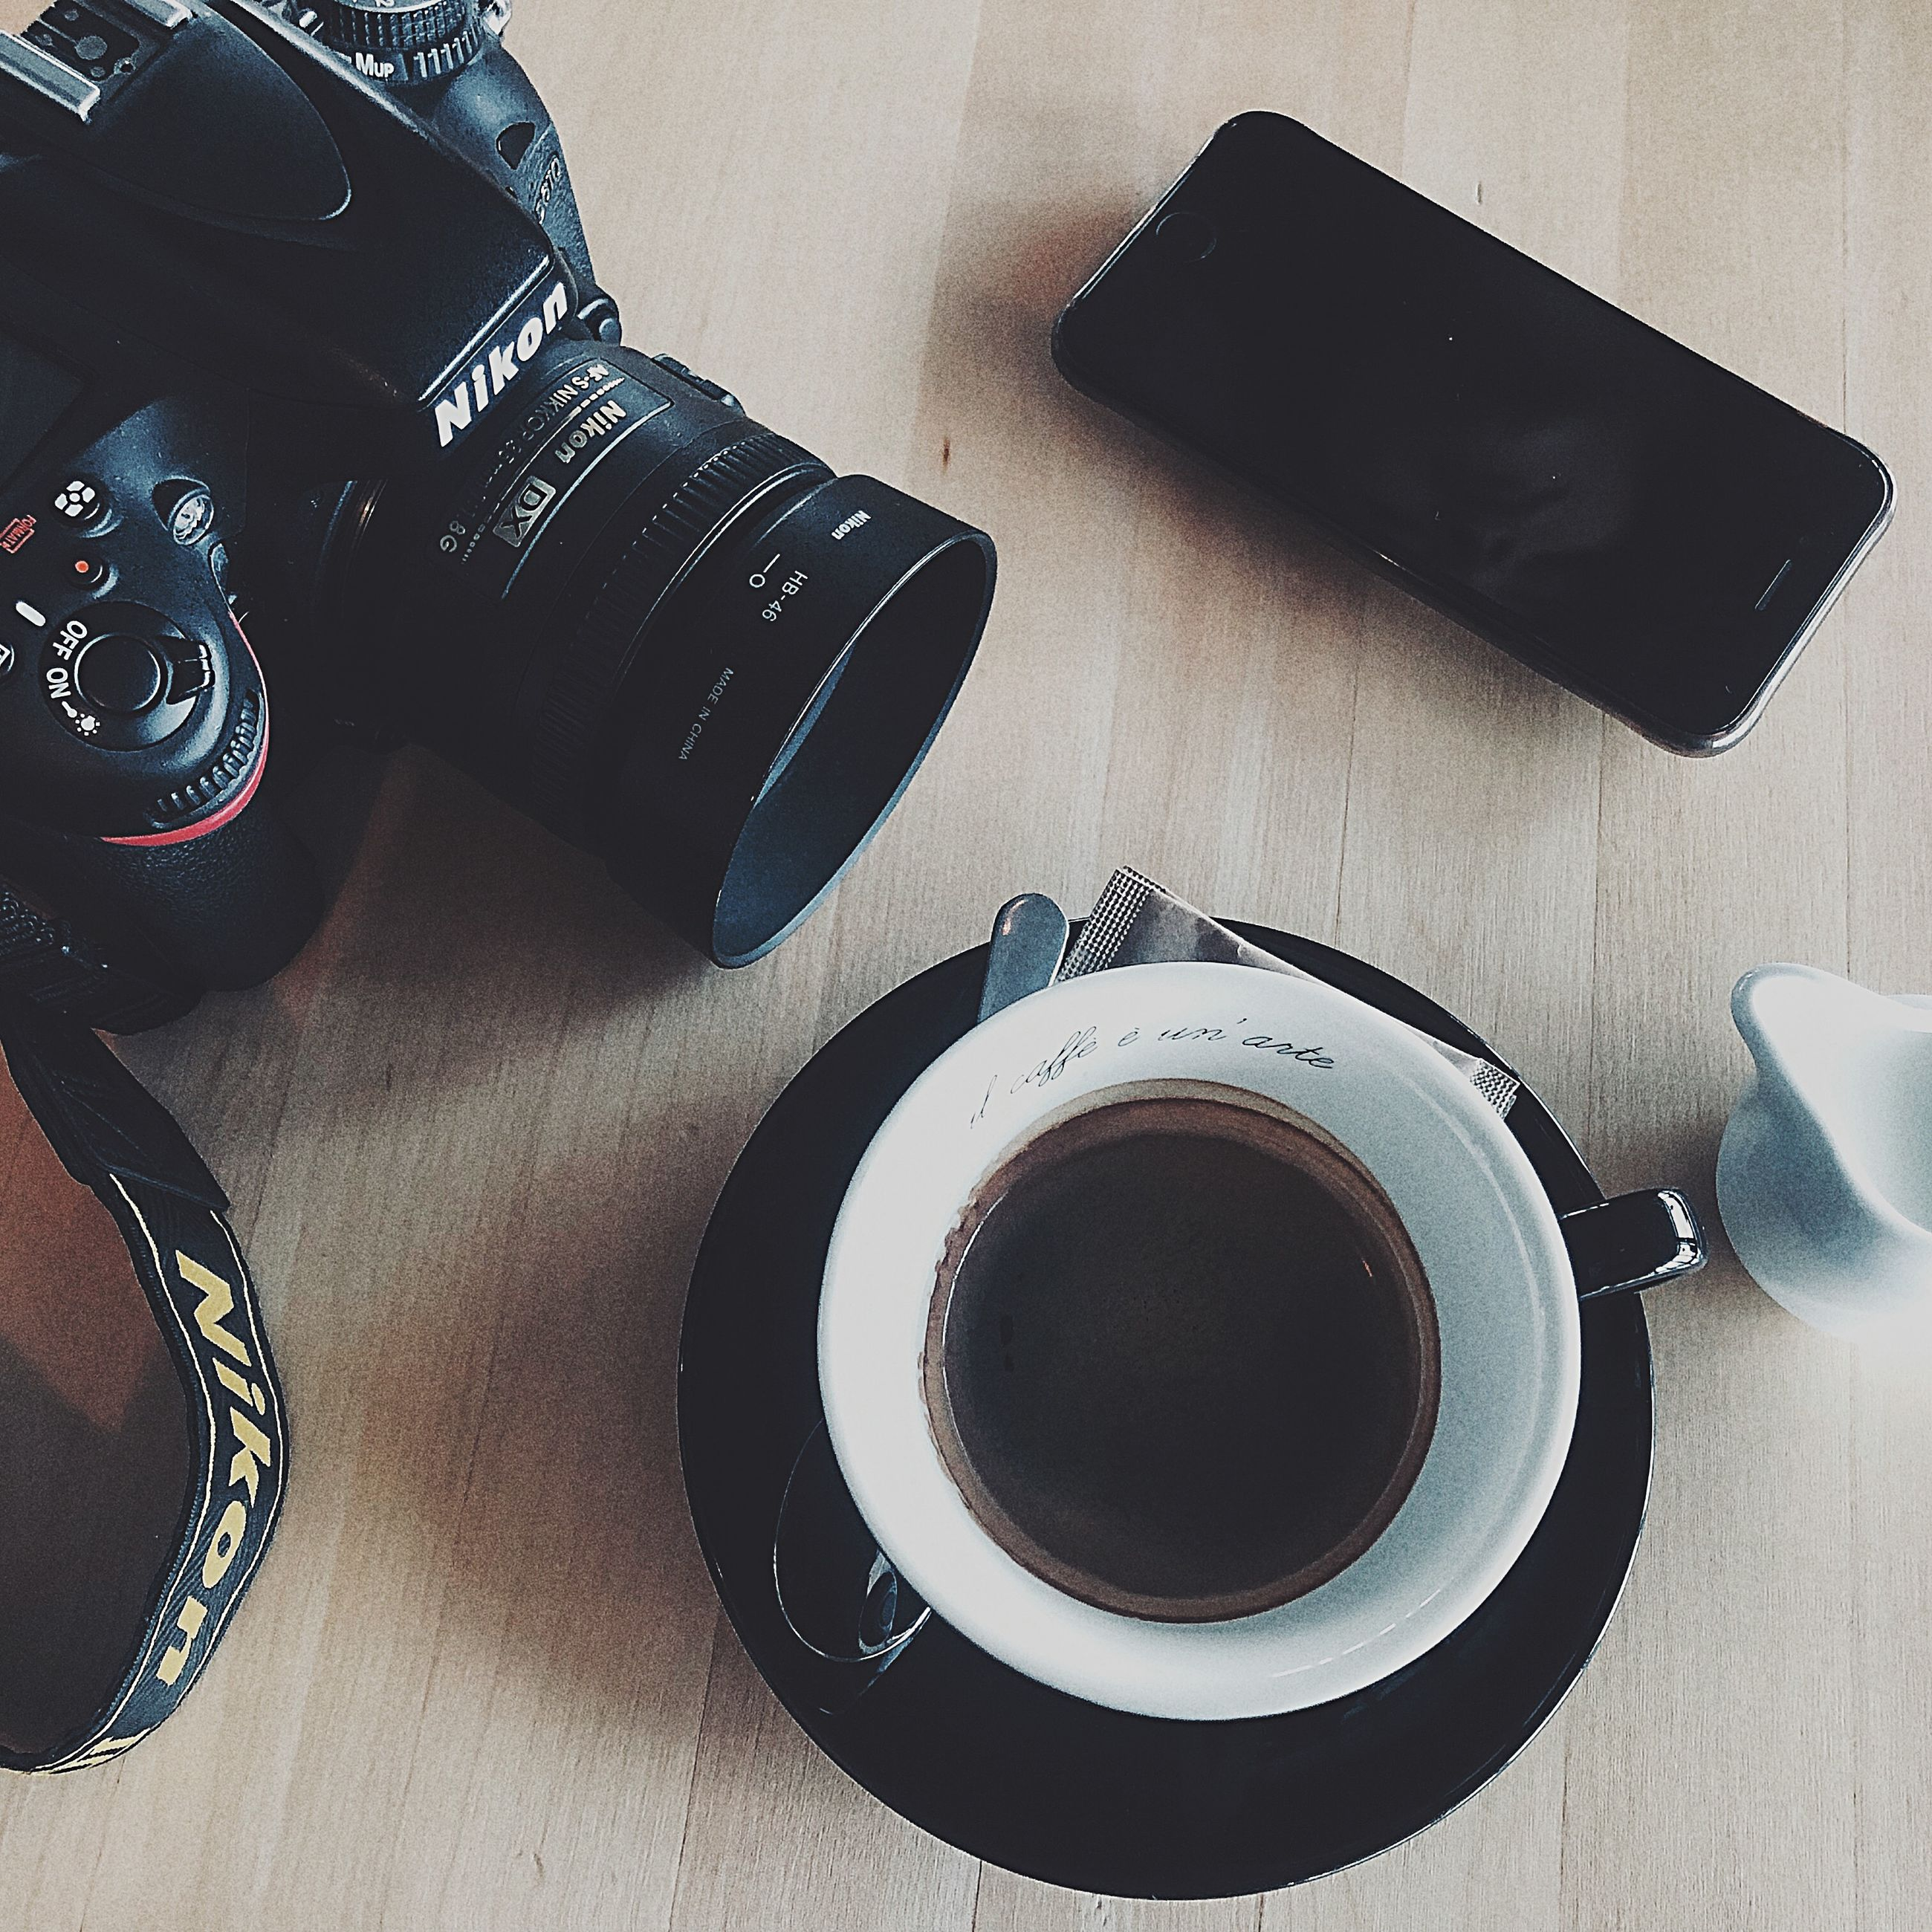 table, photography themes, technology, high angle view, indoors, still life, camera - photographic equipment, cup, mug, camera, drink, refreshment, food and drink, coffee, coffee cup, coffee - drink, no people, photographic equipment, saucer, digital camera, crockery, slr camera